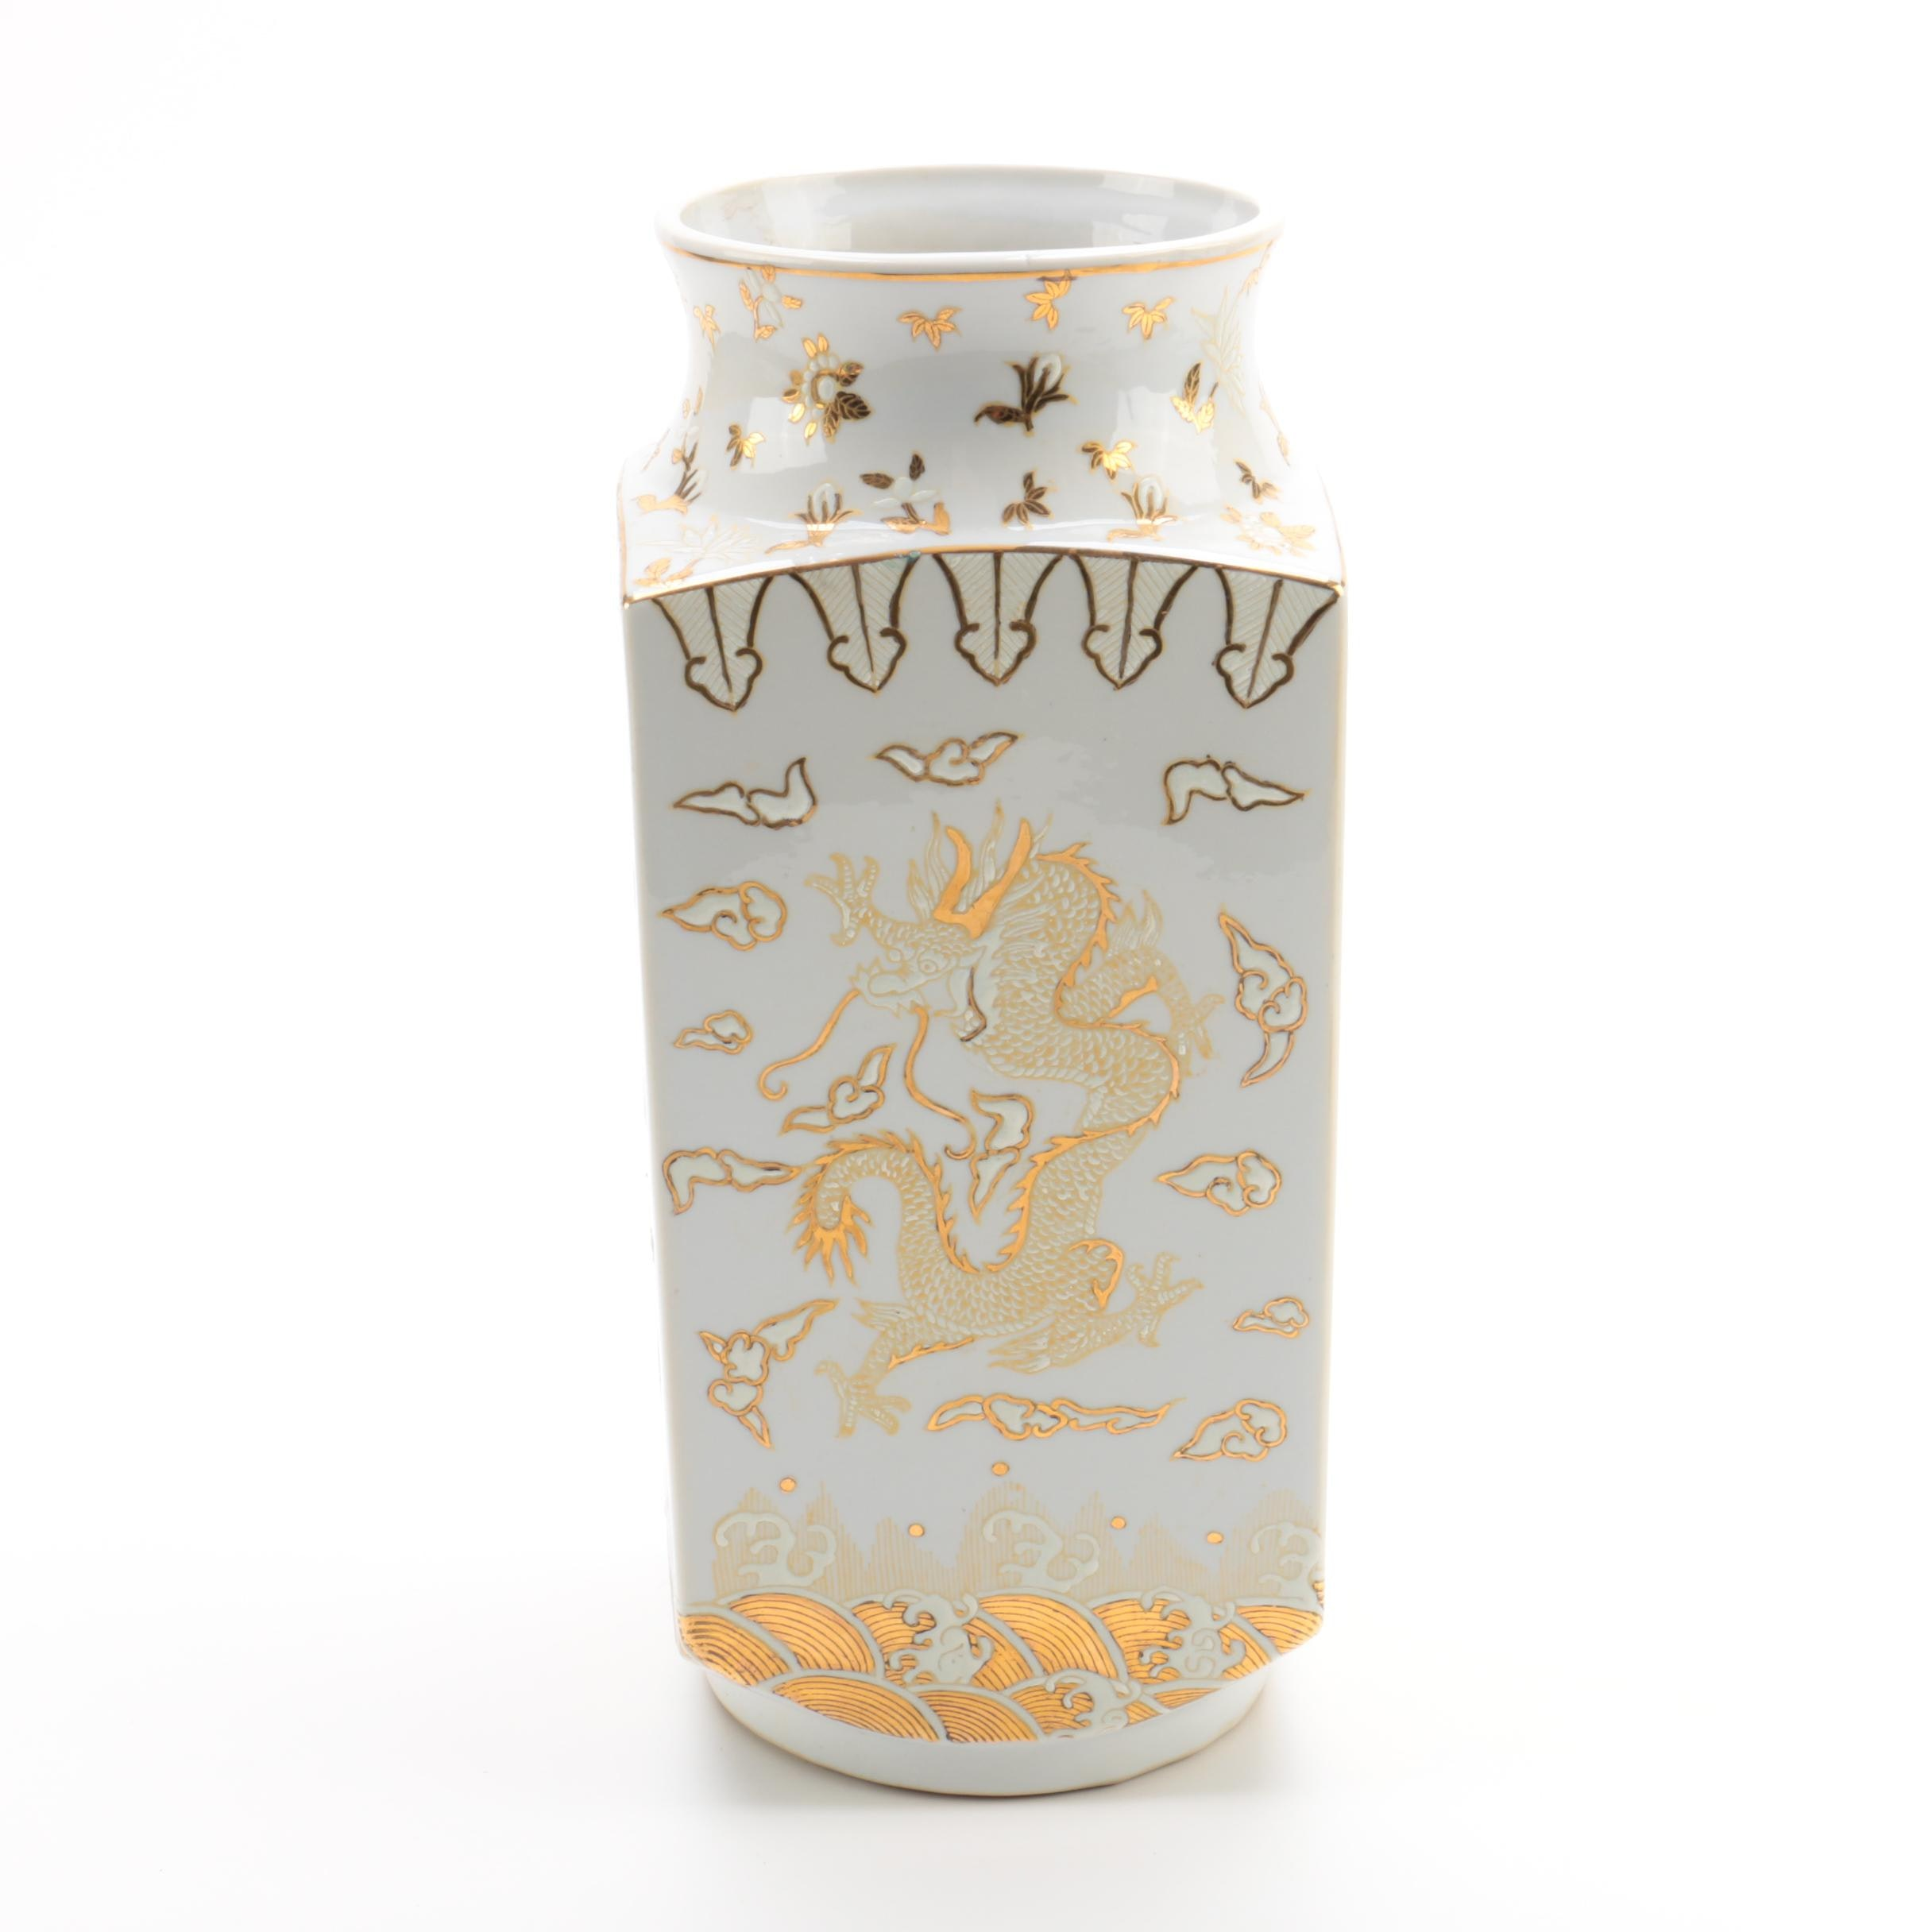 Chinese Signed Porcelain Vase with Gold Gilt Dragon Motif